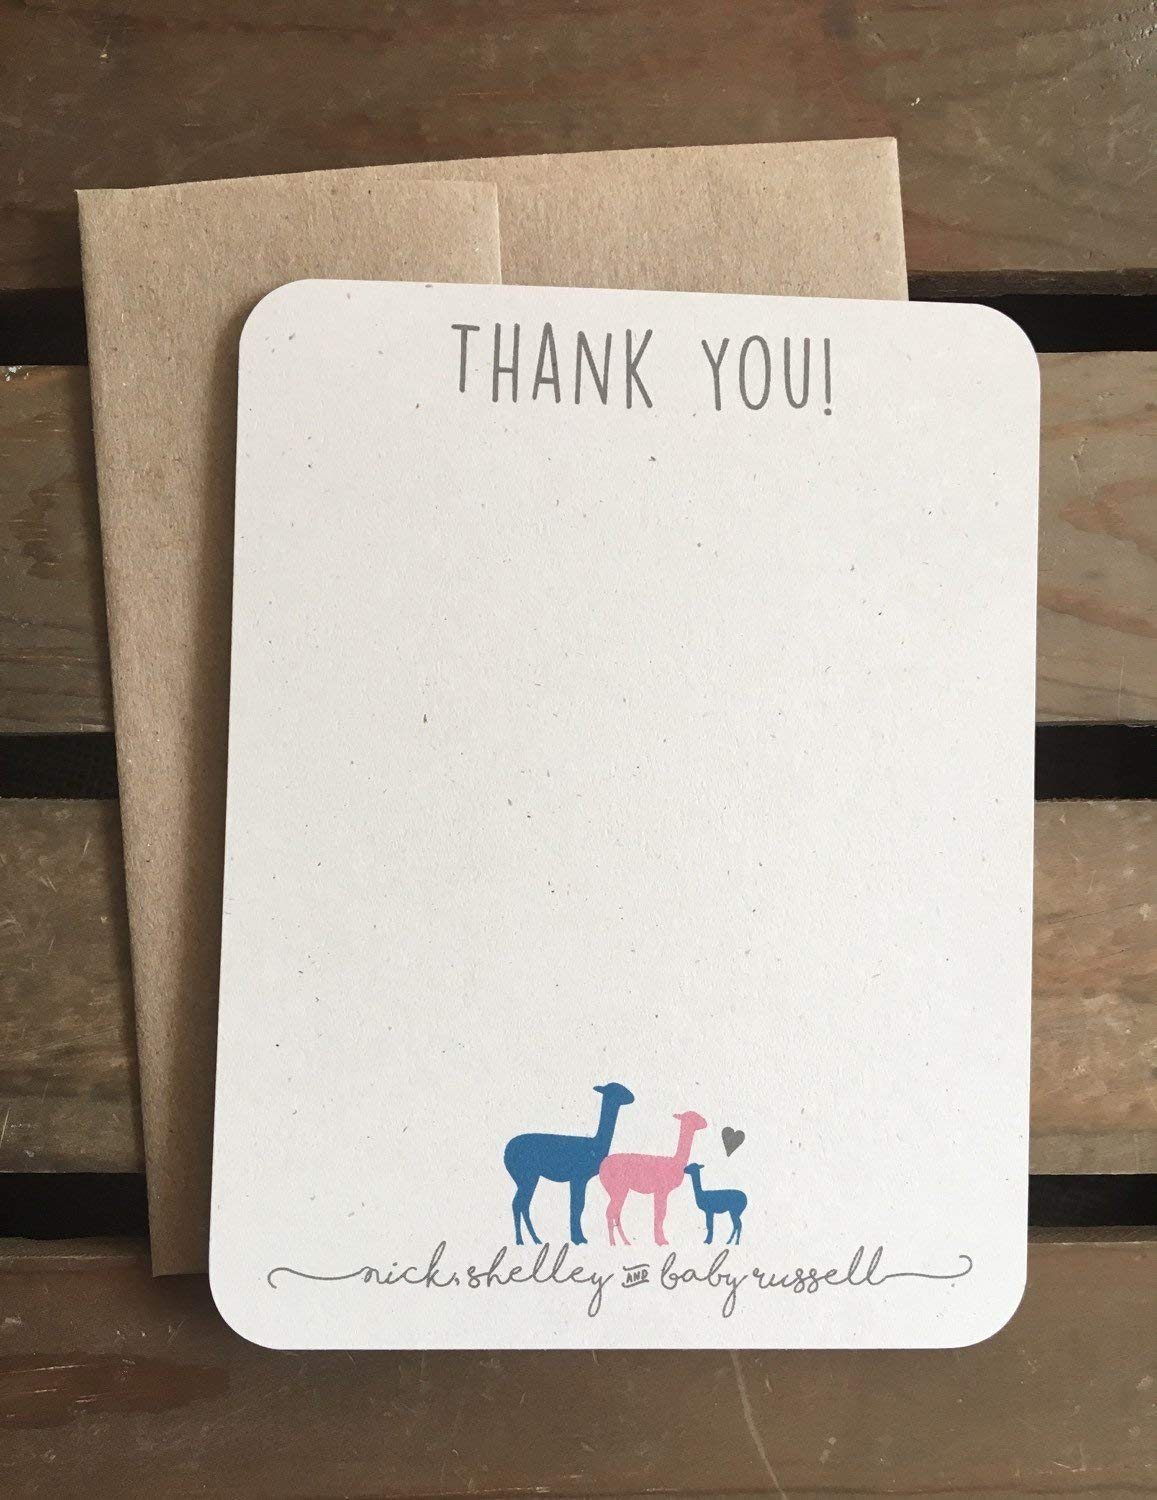 Llama Baby Shower Thank You Cards - Personalized - CUSTOM - From Family - Recycled - Eco Friendly - Gift Set